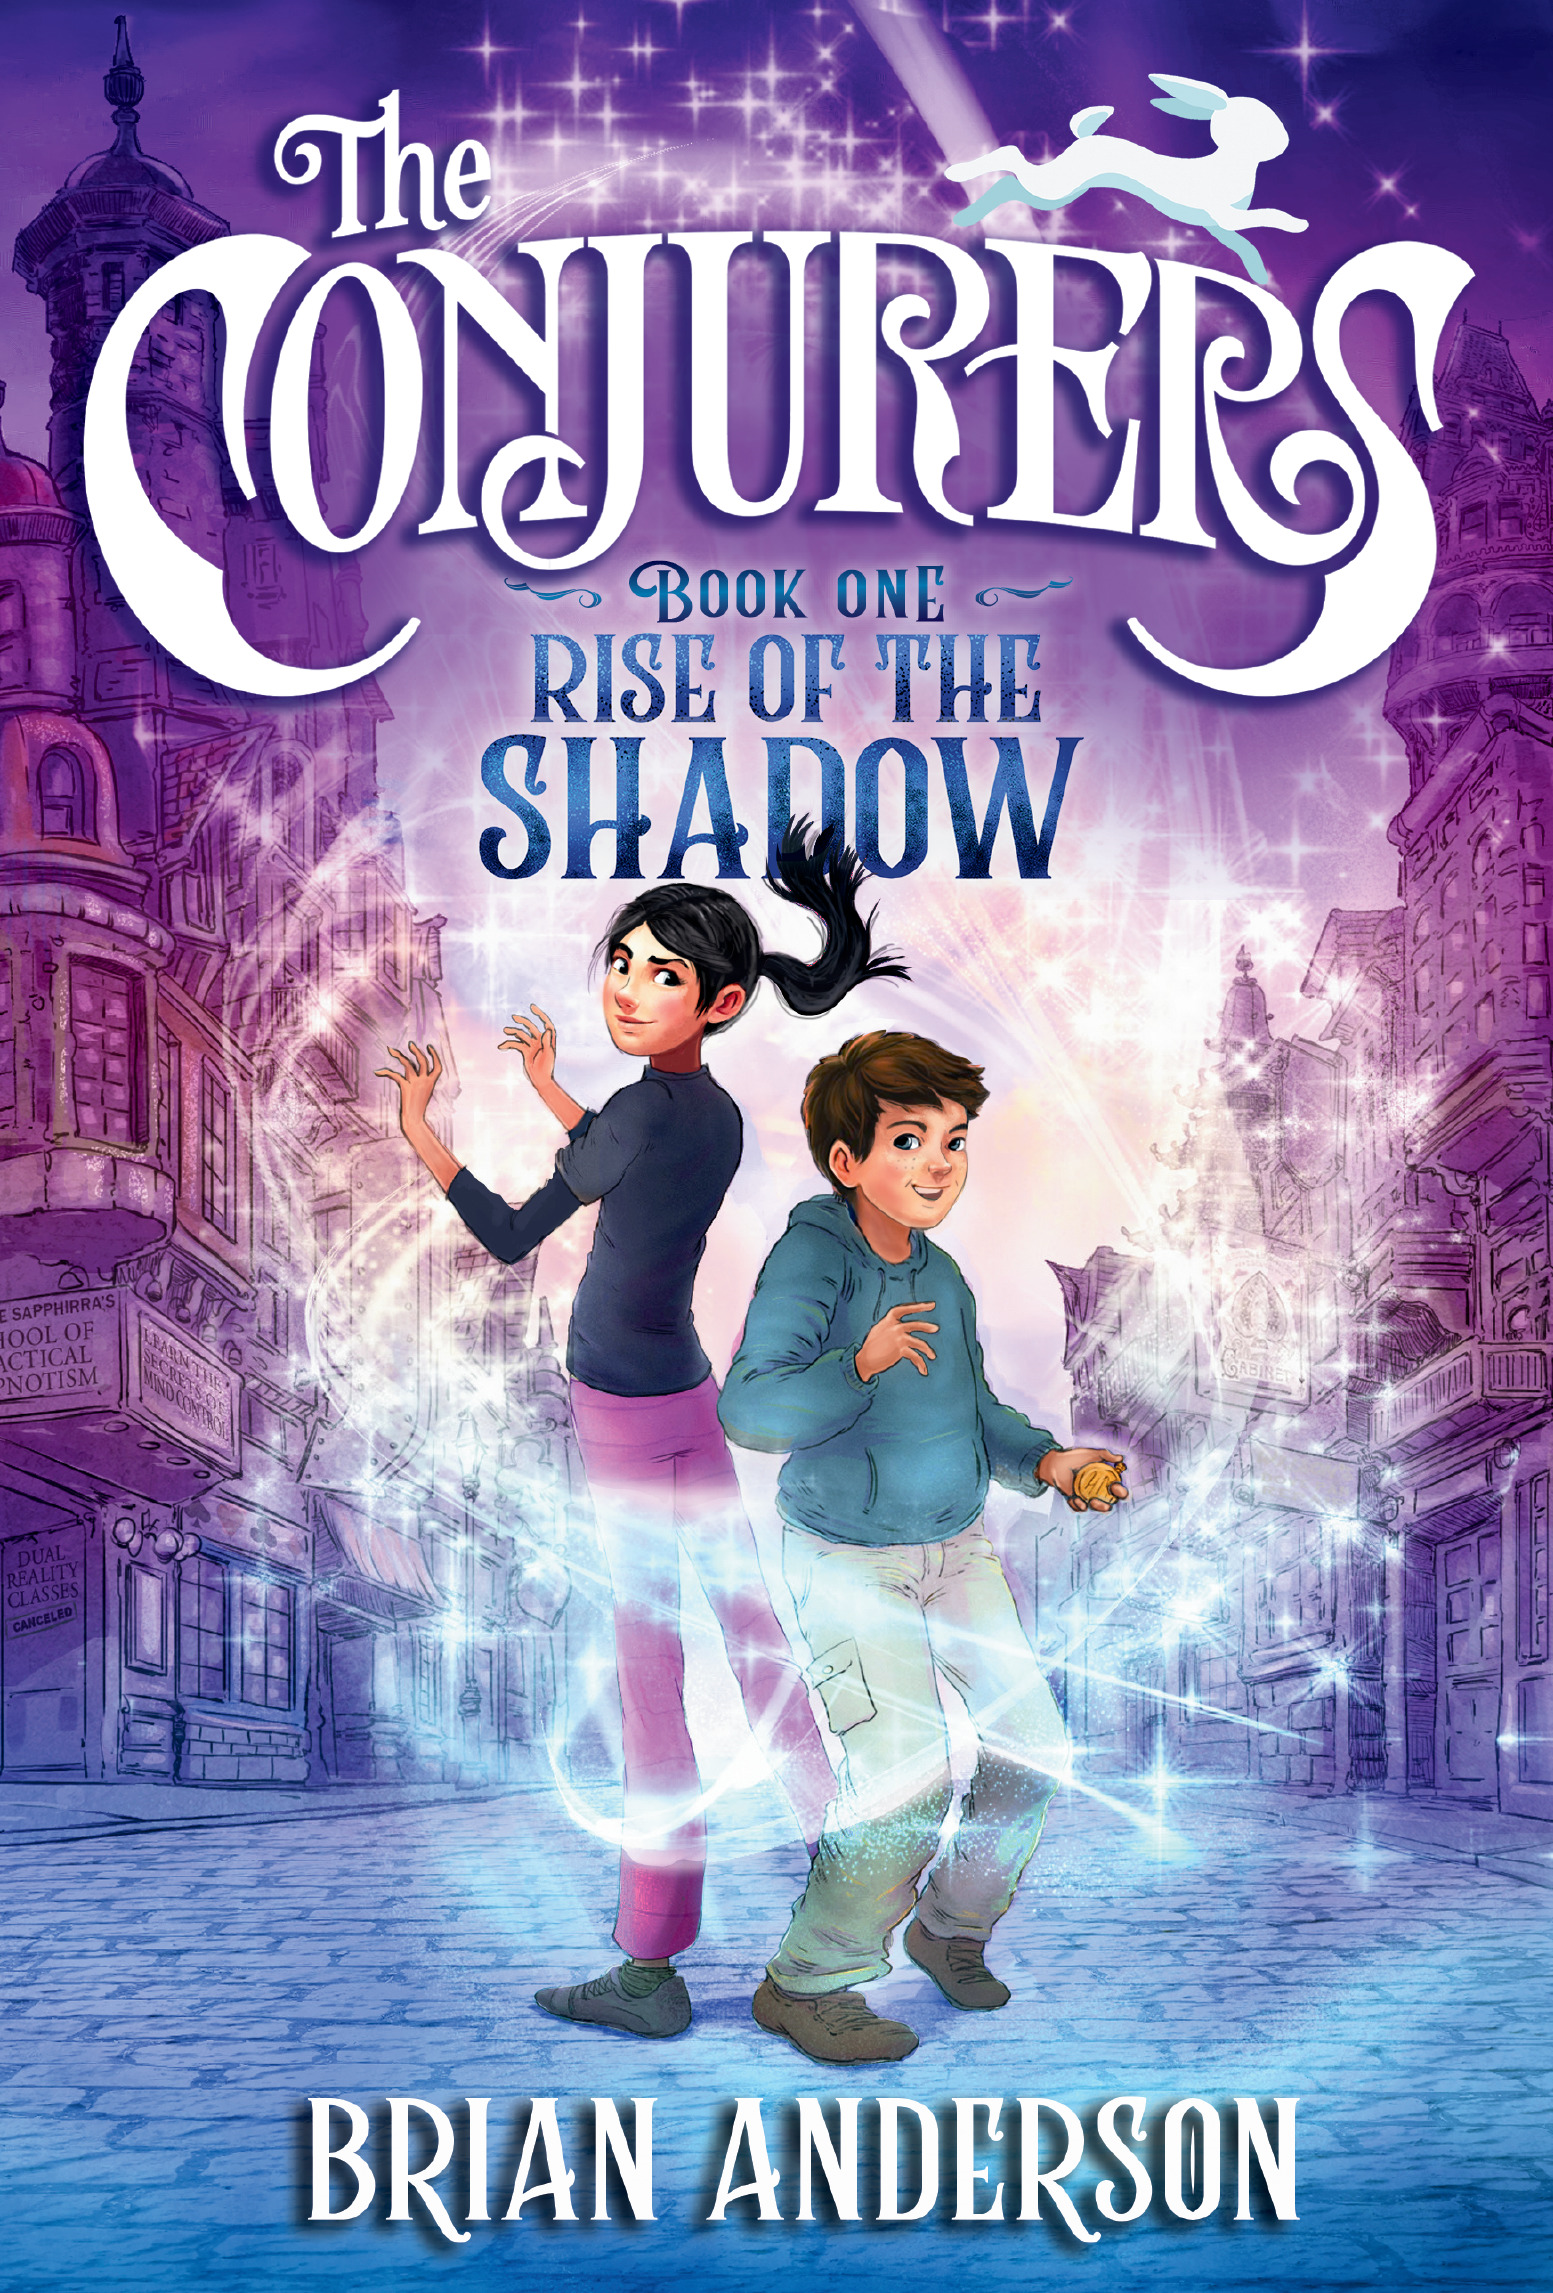 The Conjurers #1: Rise of the Shadow